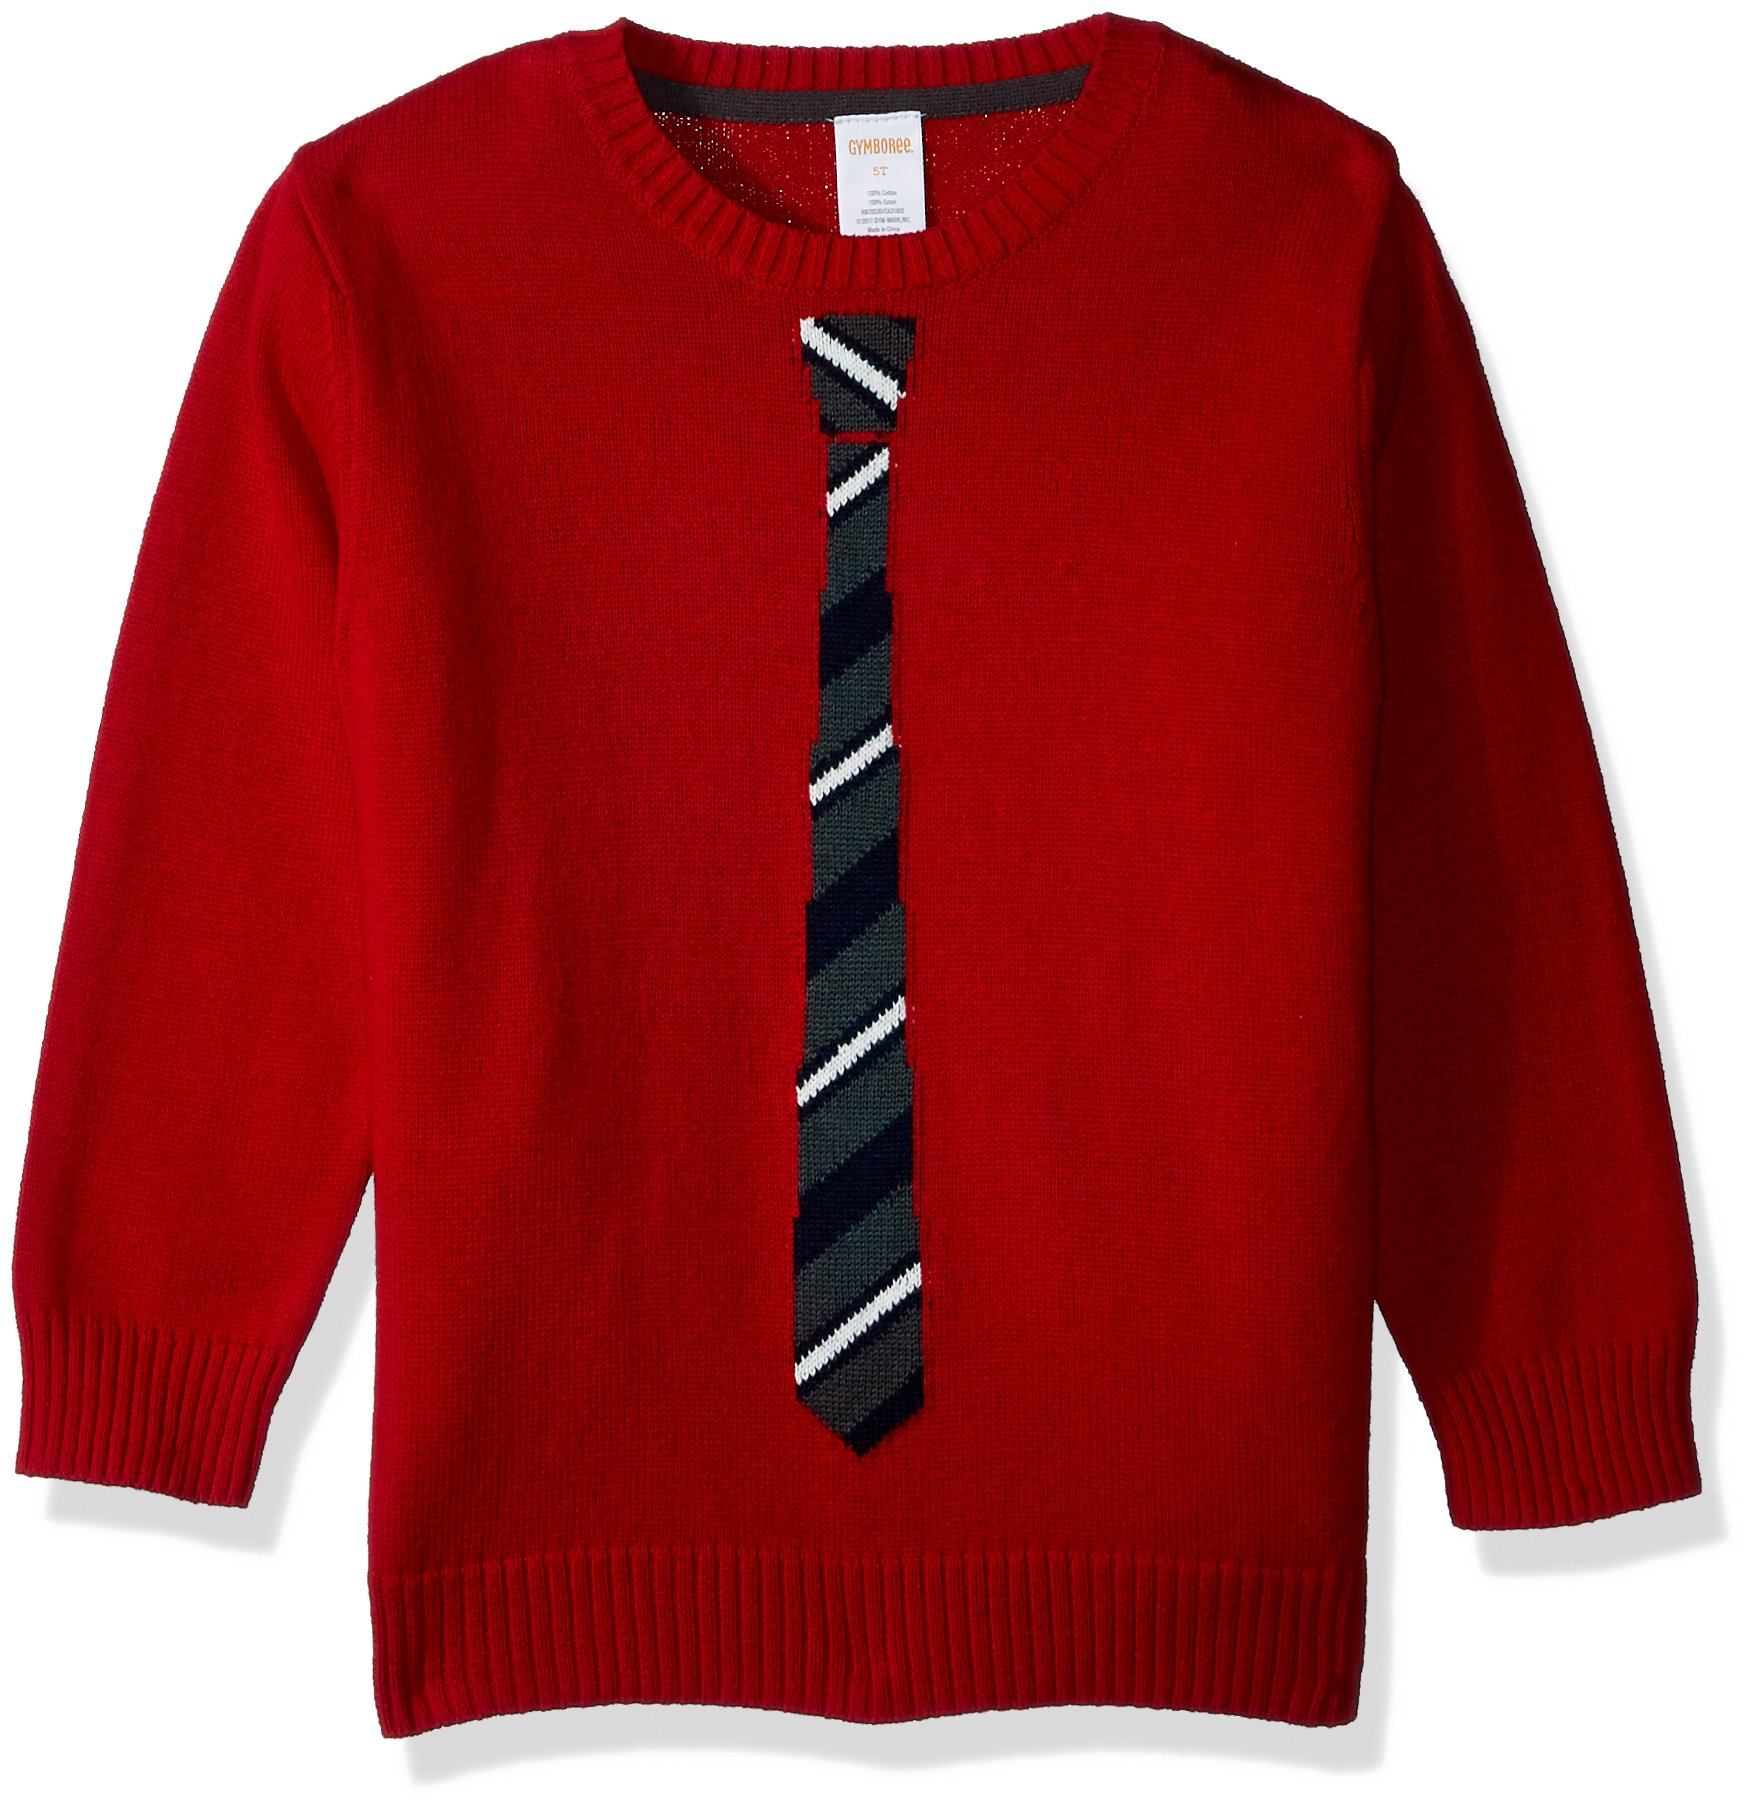 Gymboree Toddler Boys' Long Sleeve Crewneck Sweater Stripe Tie, Tango Red, 4T by Gymboree (Image #1)